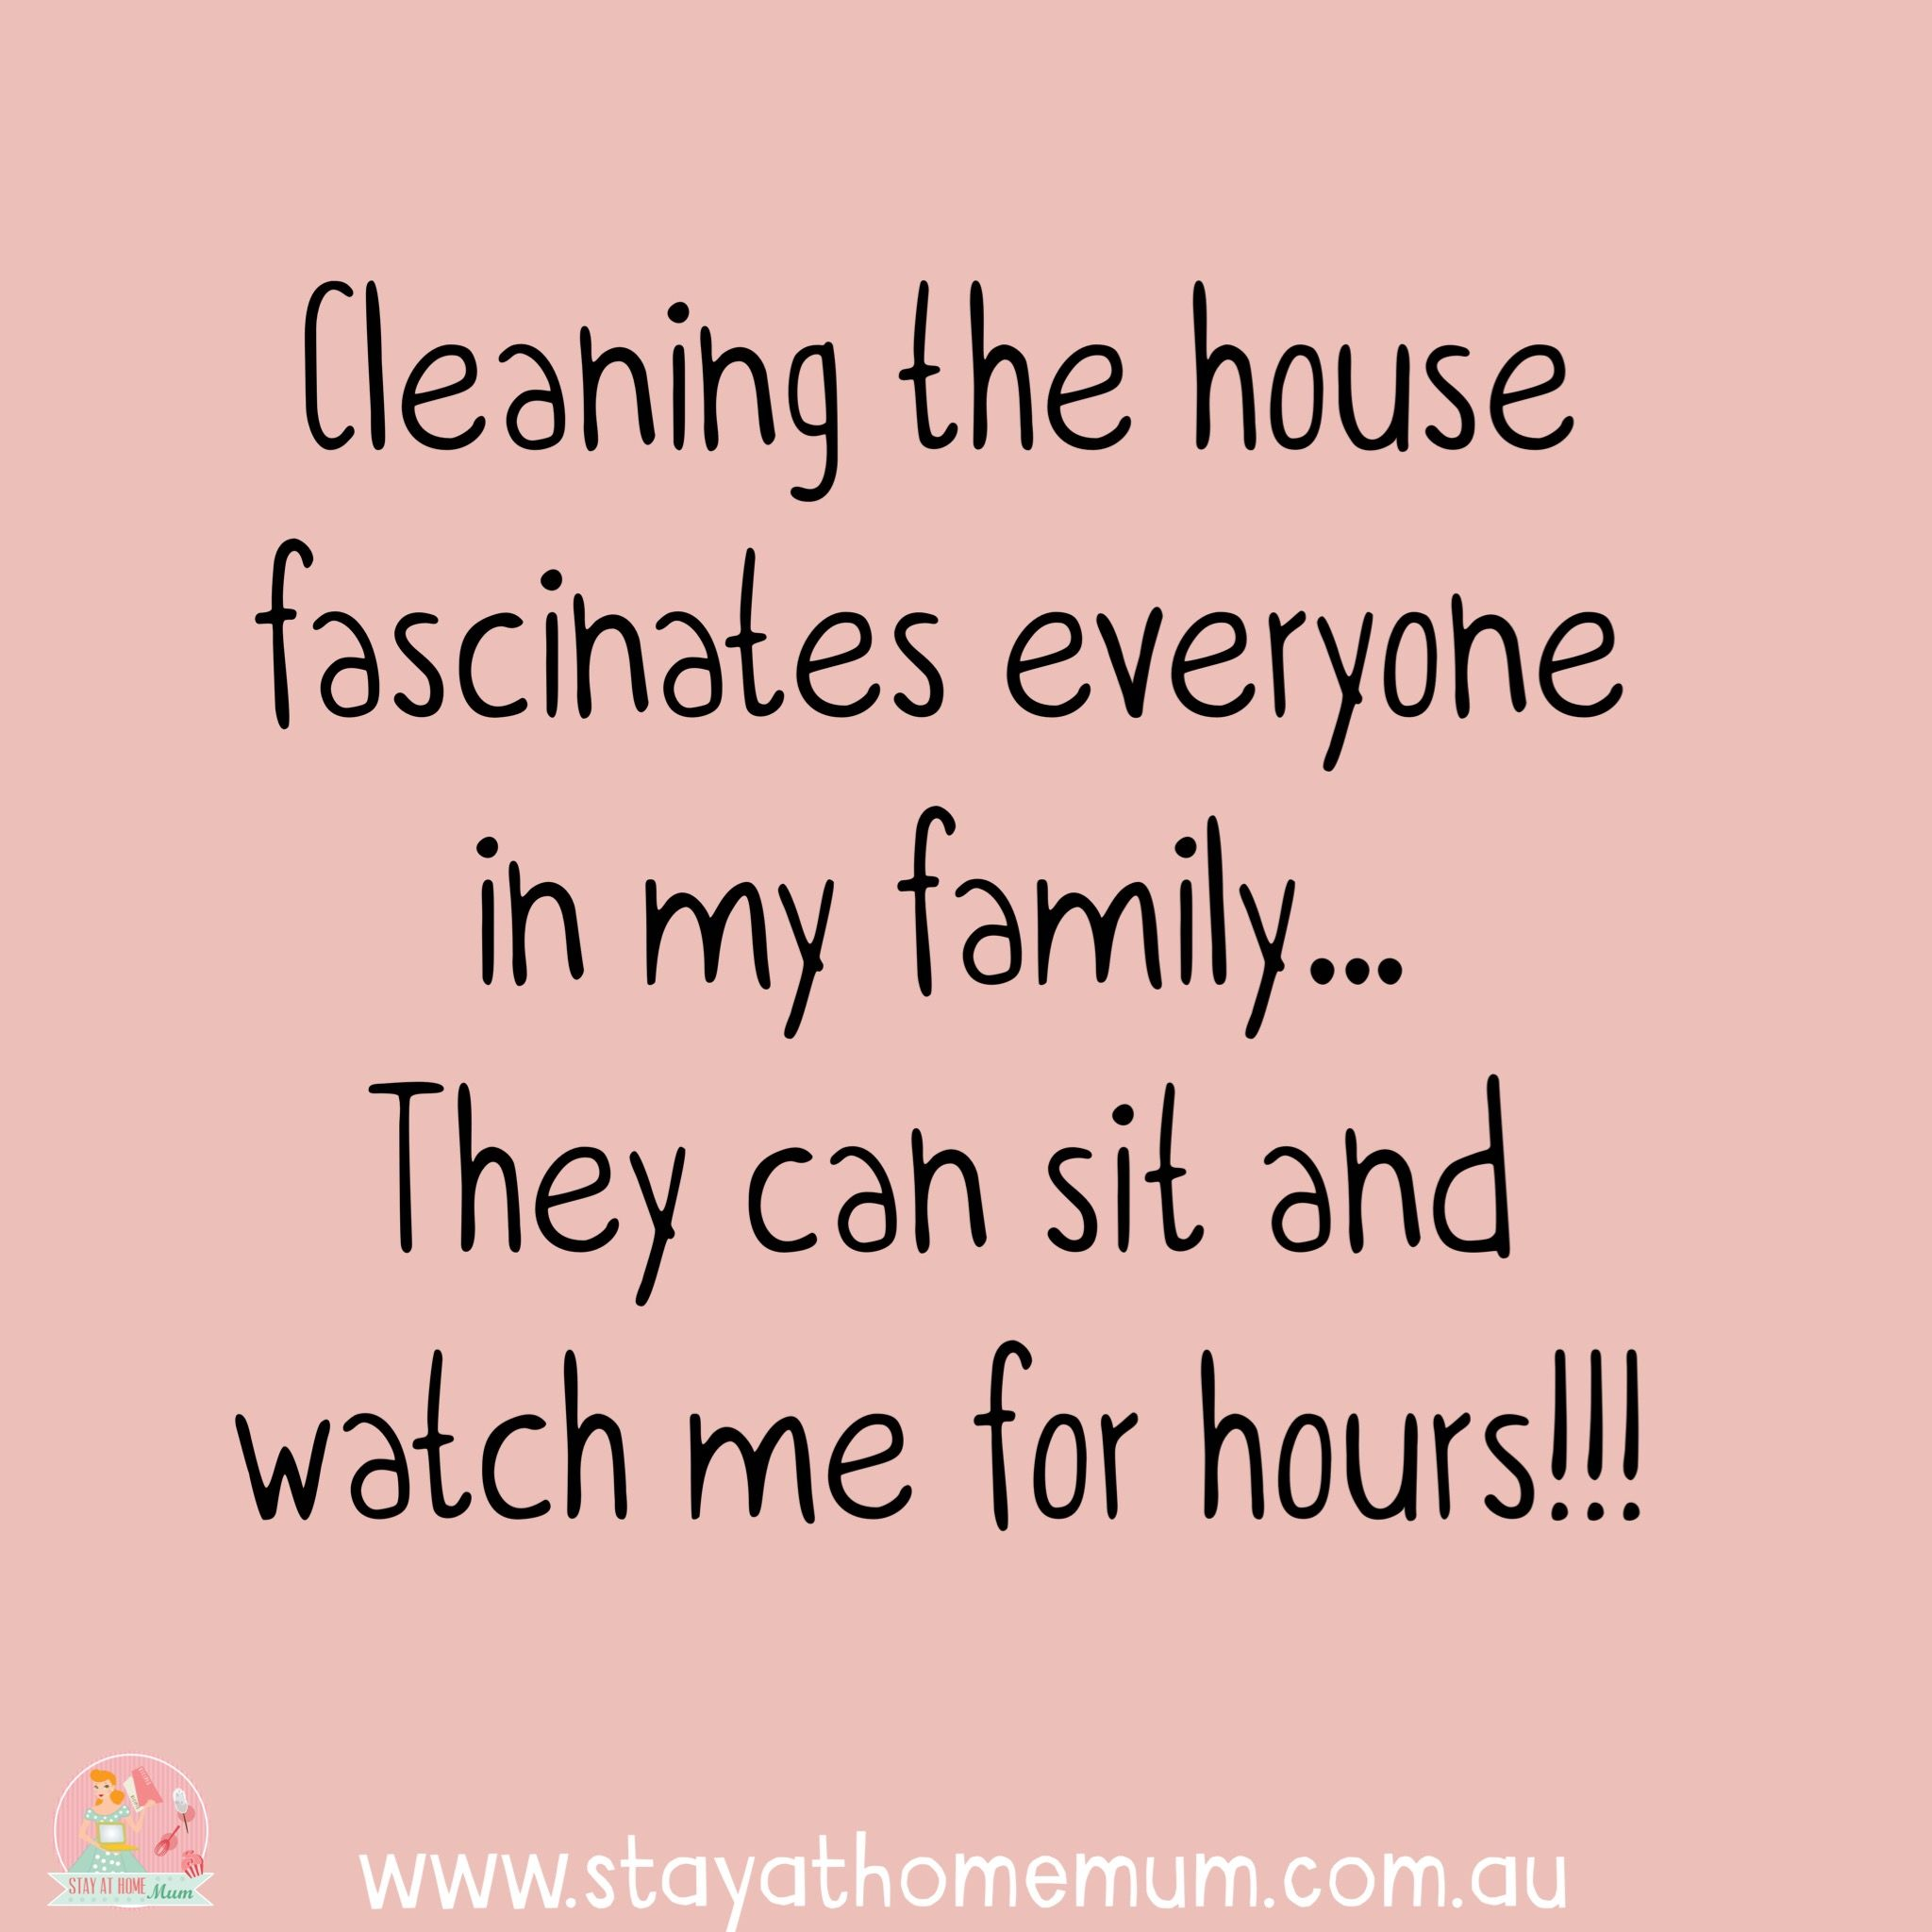 Quotes About Cleaning Cleaning The House Fascinates My Family. Cleaning Humor